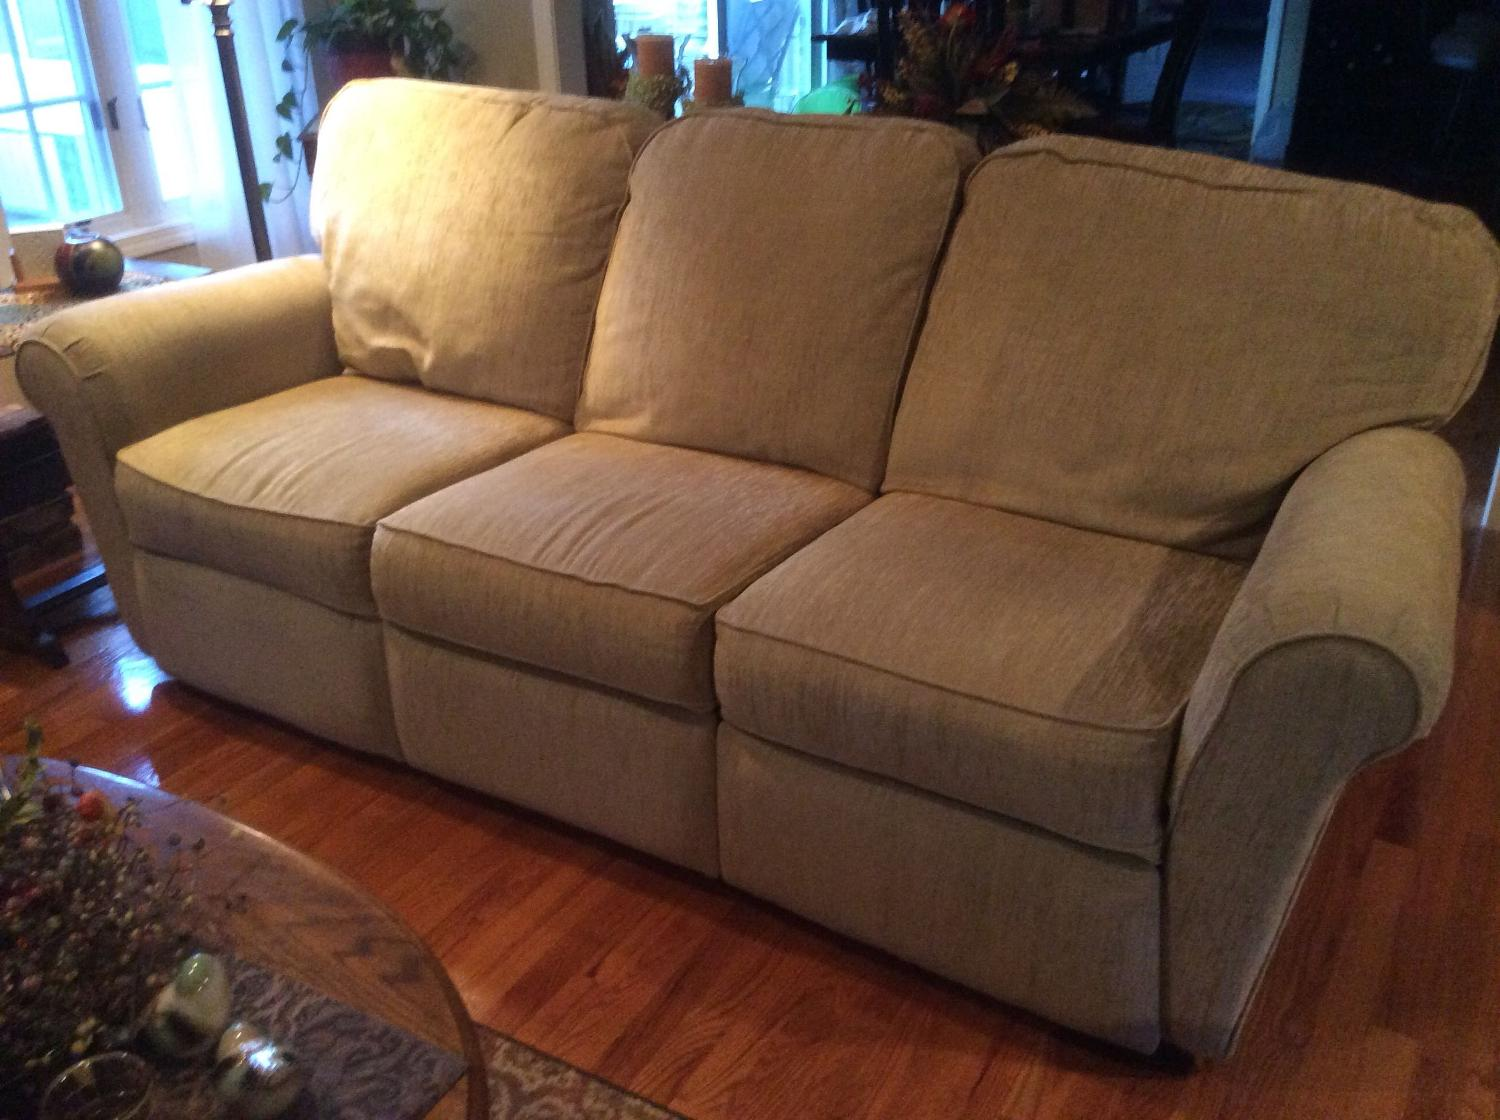 Find More Lazy Boy Sofa With Double Recliners For Sale At